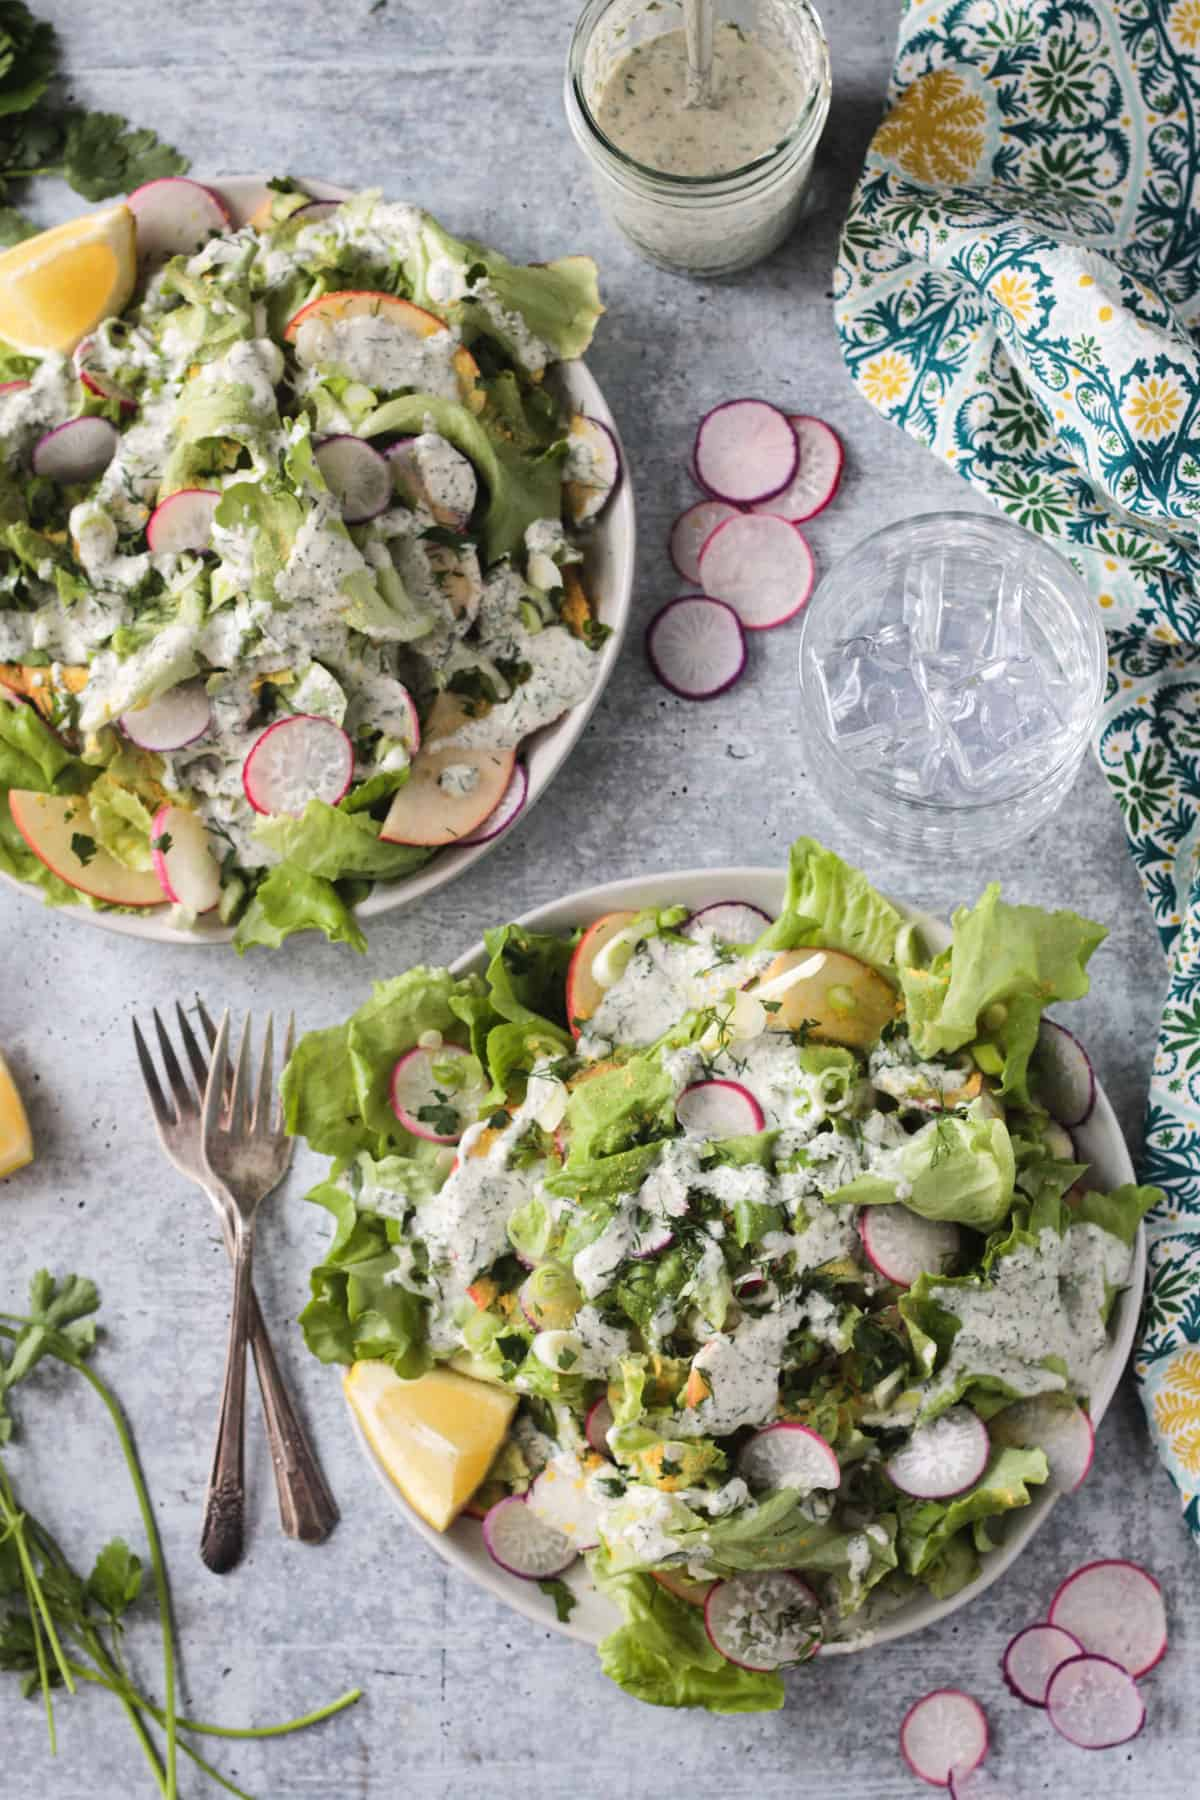 Tablescape with two bowls of salad surrounded by sliced radishes and lemon wedges.